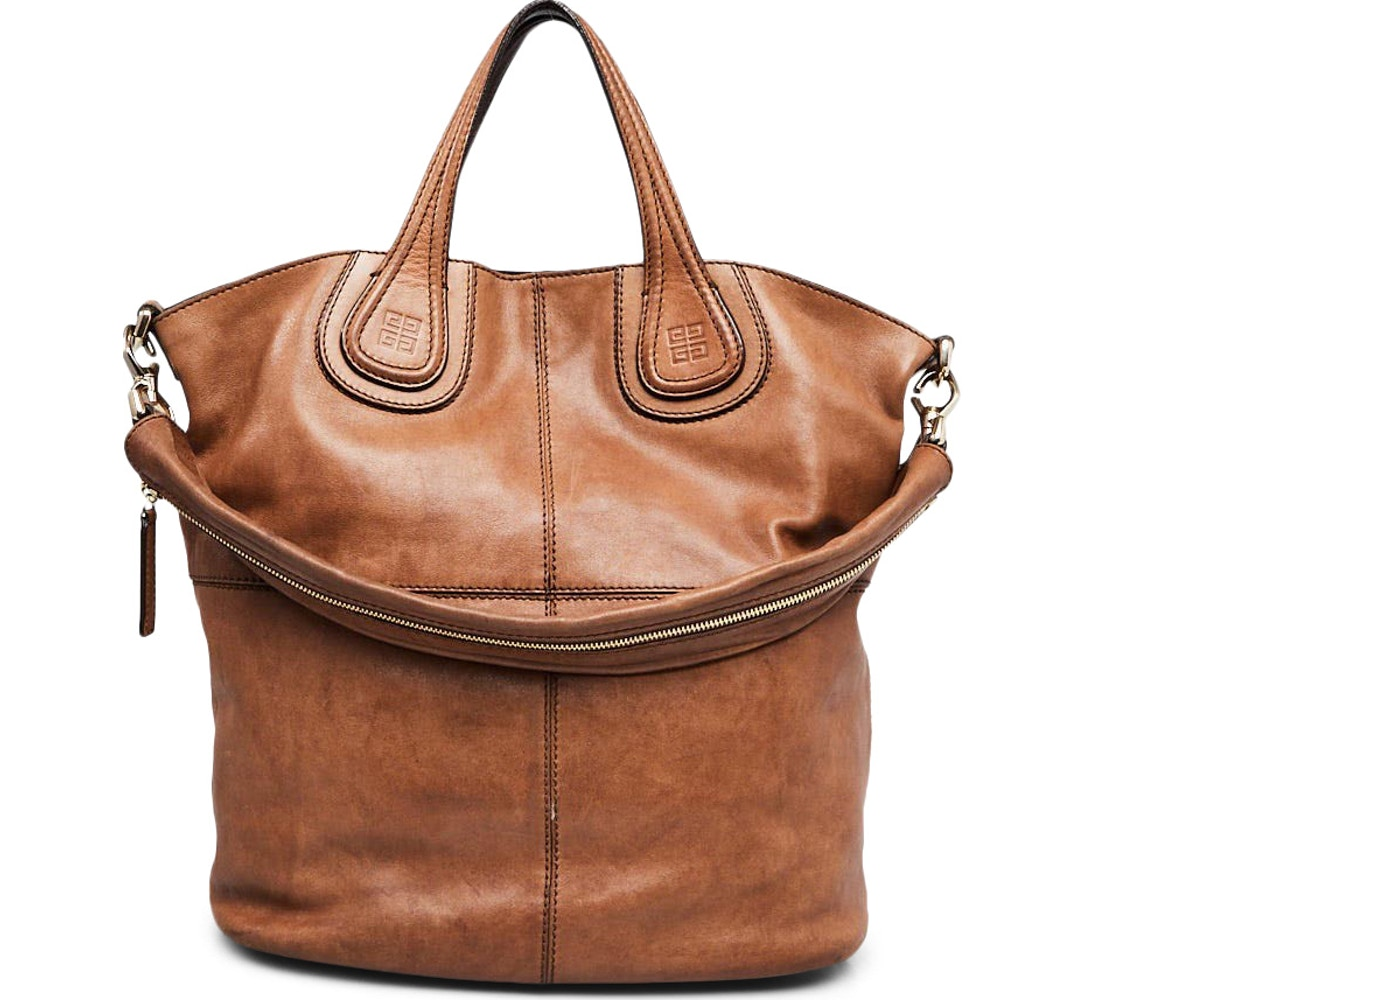 Givenchy Nightingale Shopping Tote Lambskin Brown. Lambskin Brown 740420e2ed401